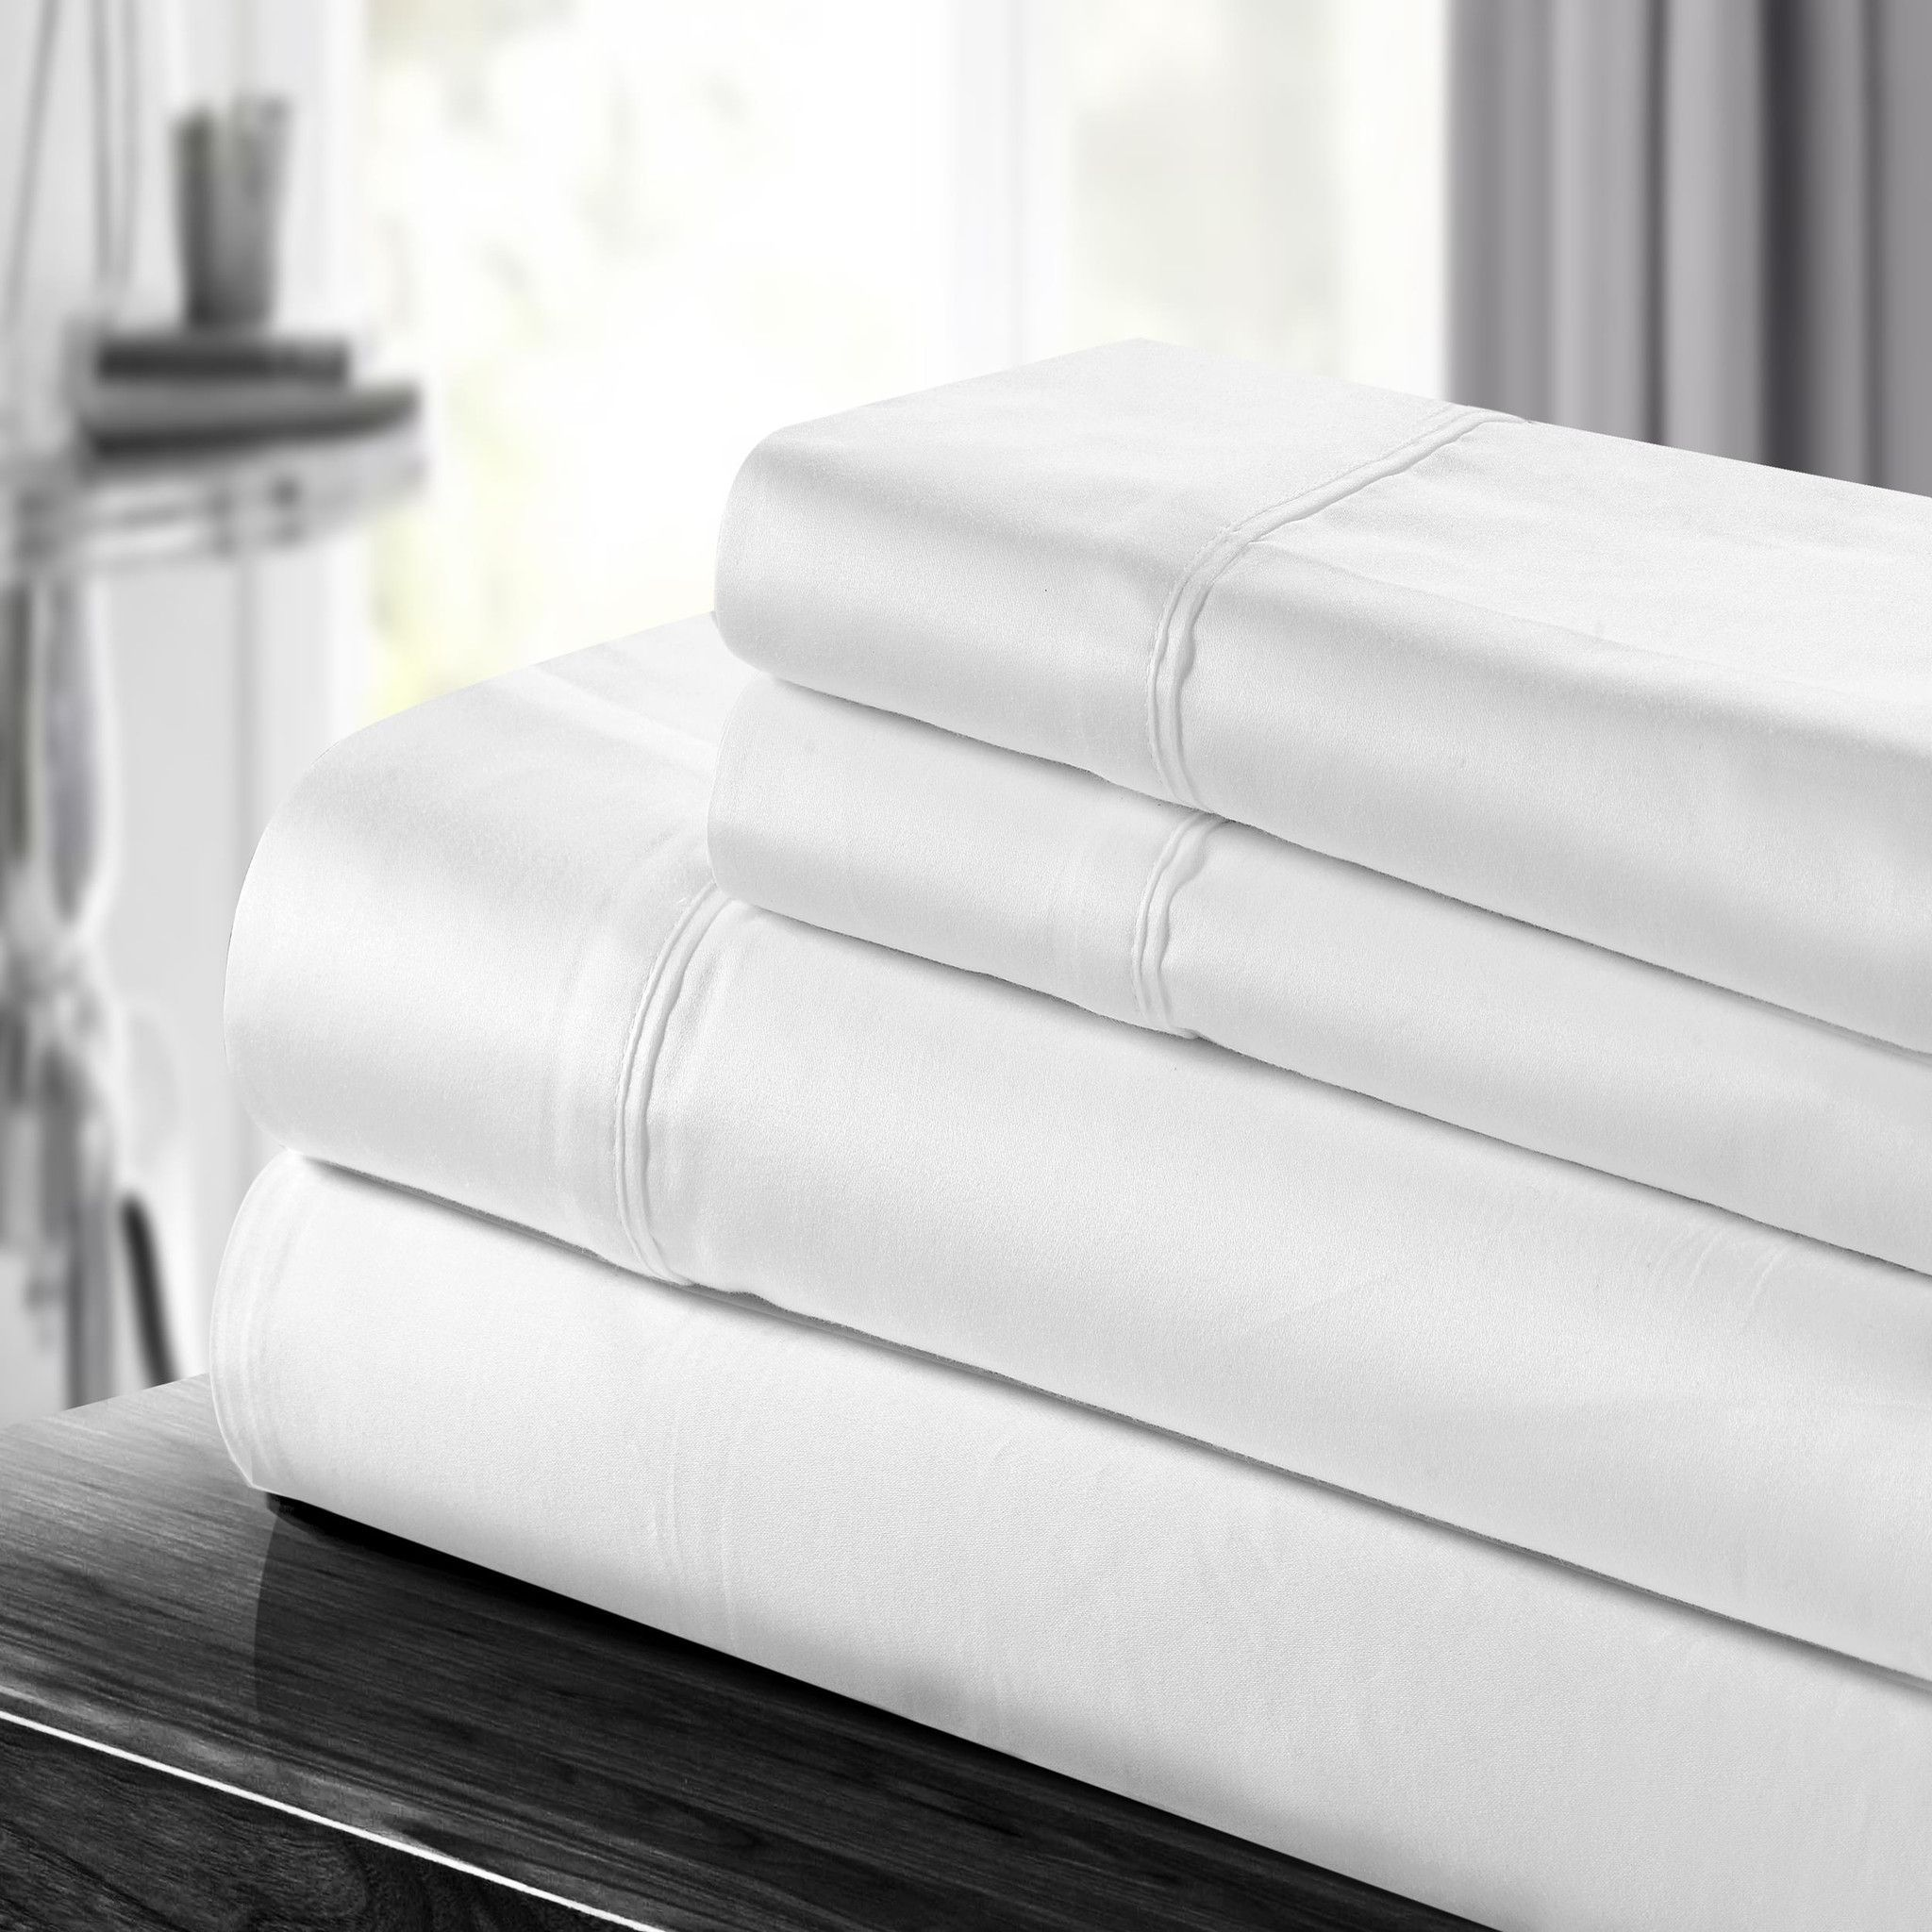 Chic home cotton thread count sheet set white queen king